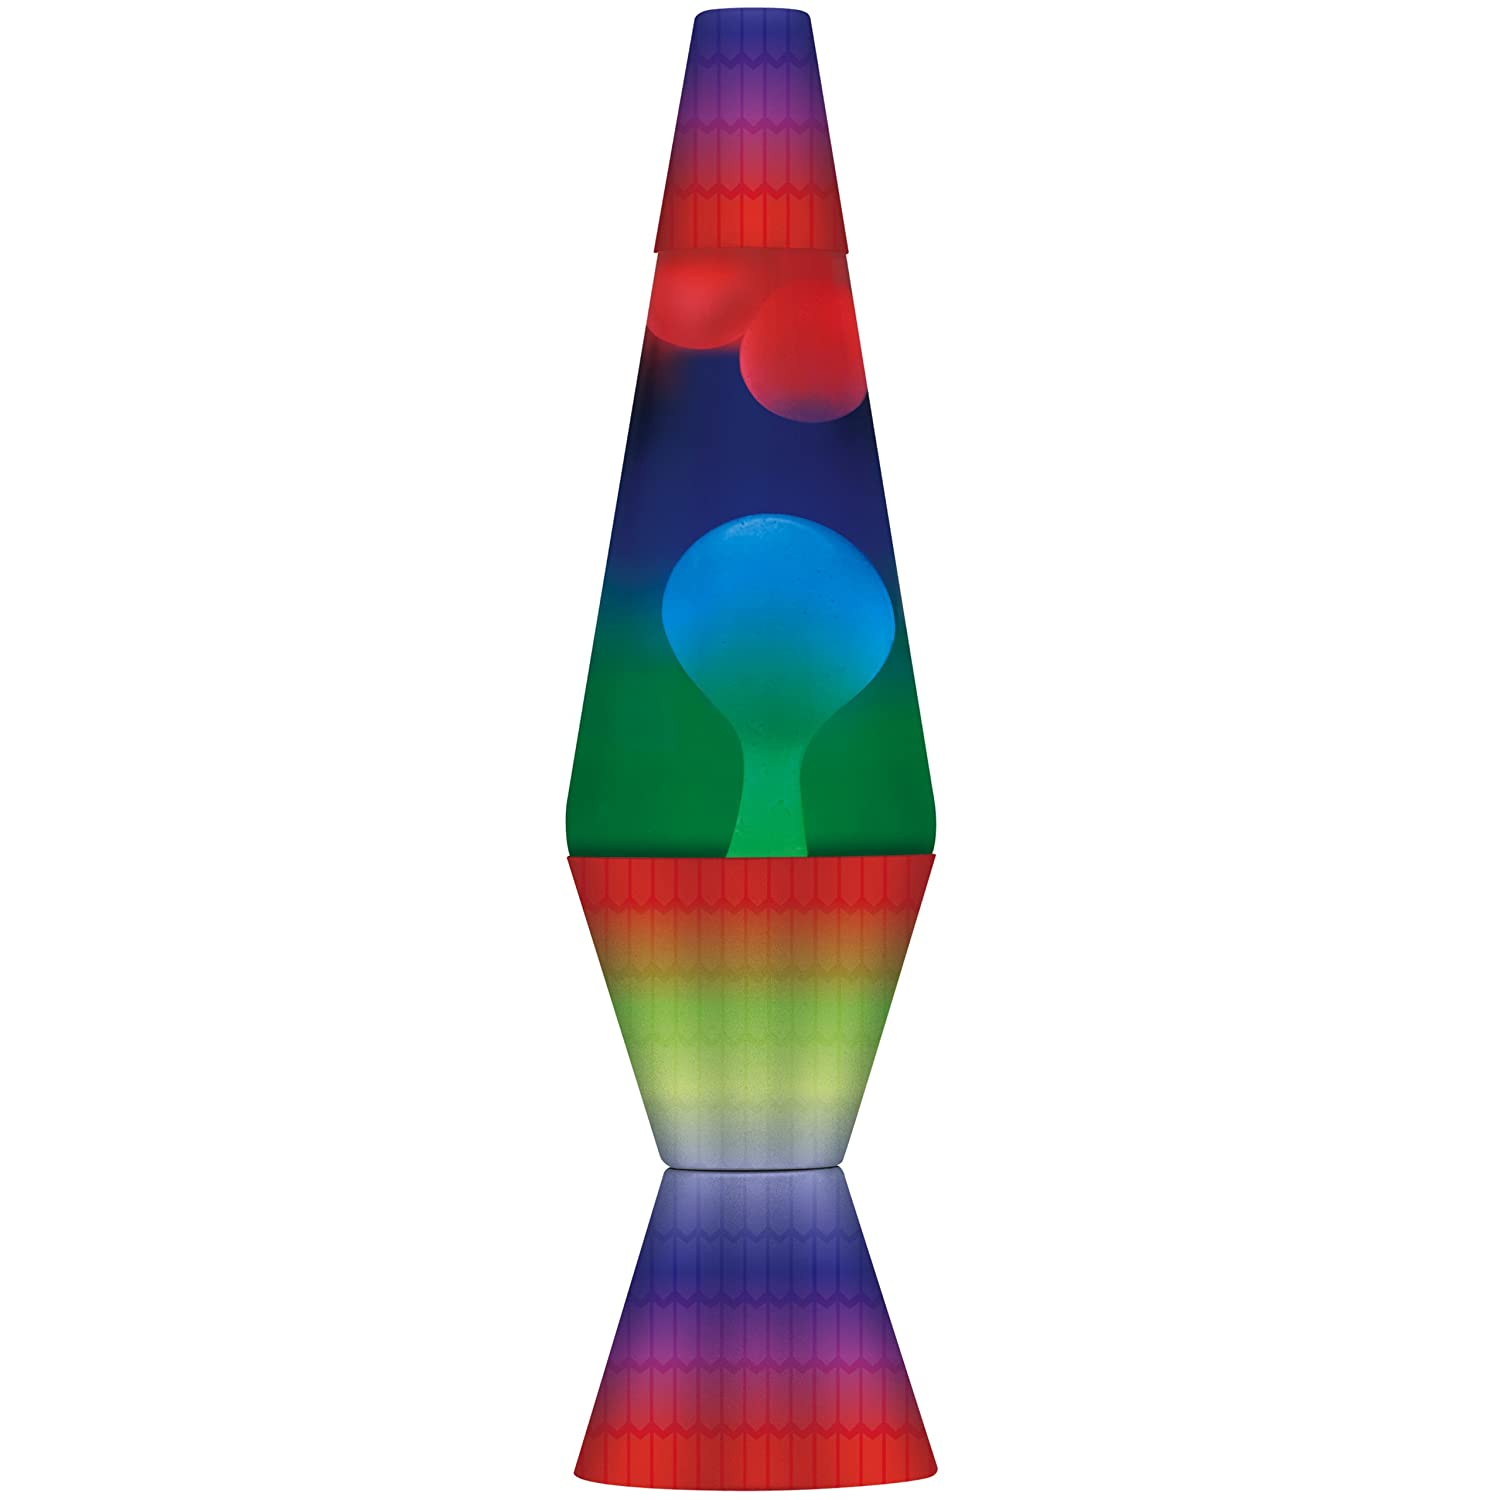 Lava the Original 14.5-Inch Colormax Lamp with Rainbow Decal Base ...